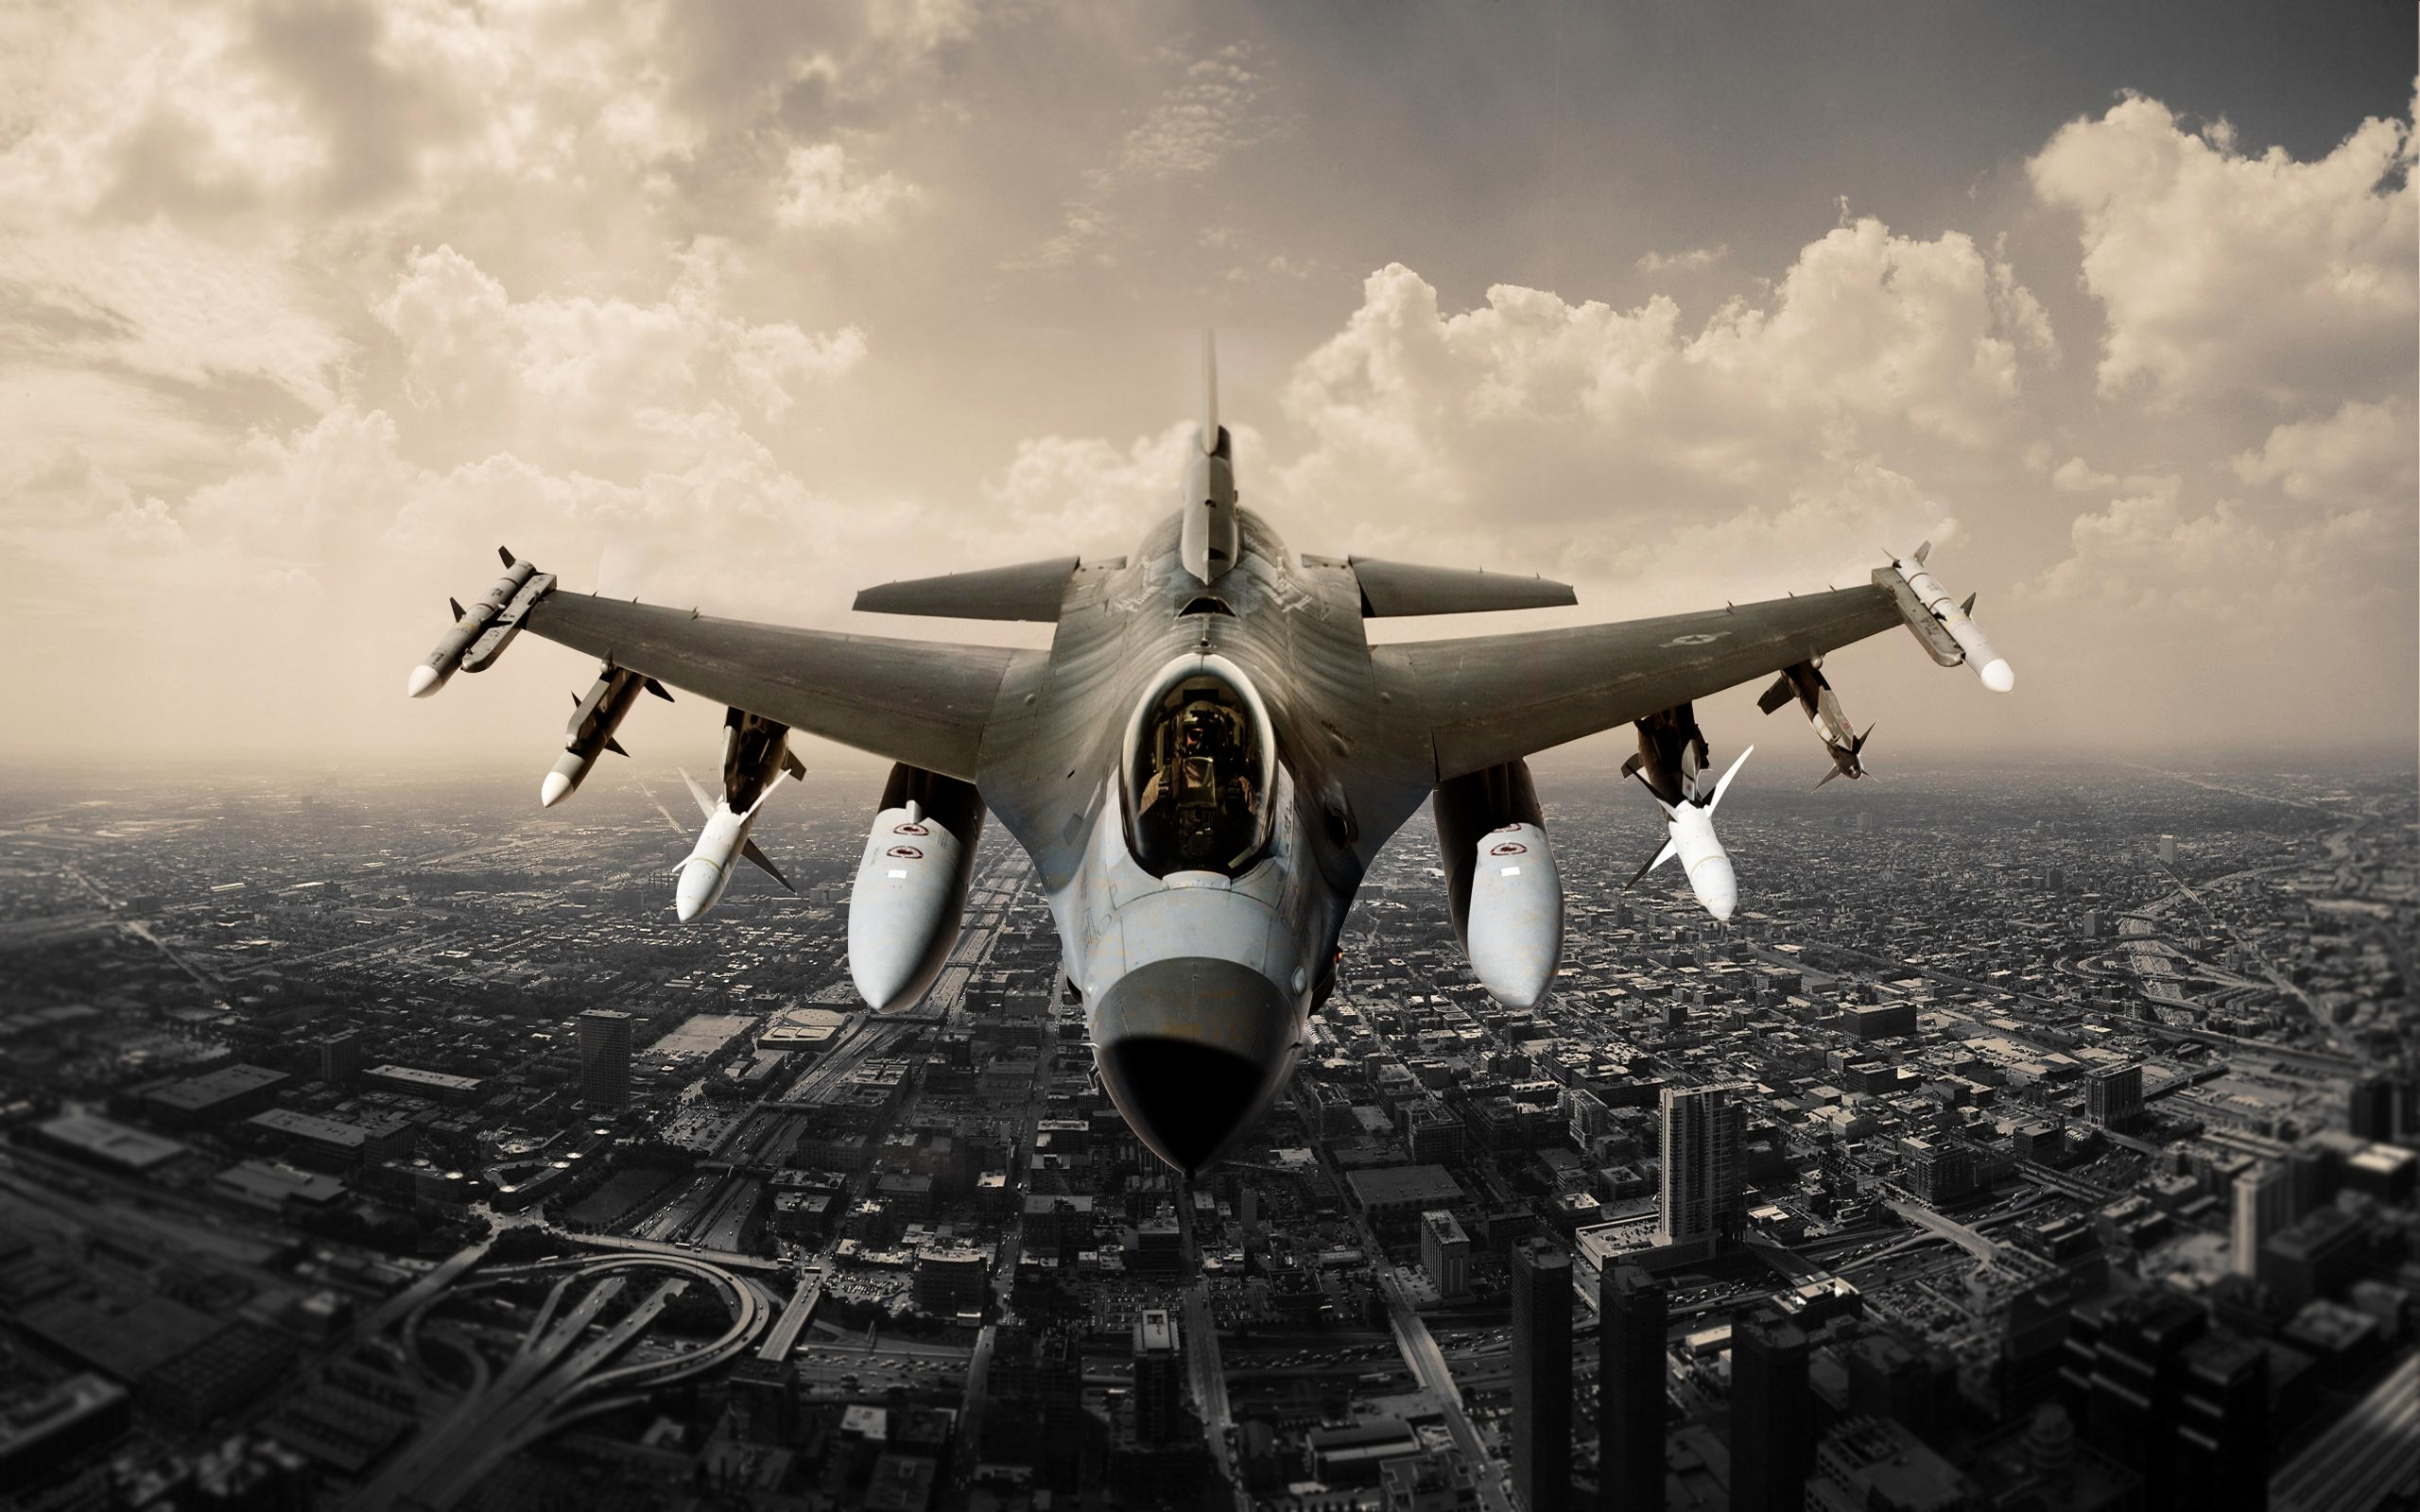 Aircraft Air Superiority F 16 F-16 Fighting Falcon Fighter Fighters Military